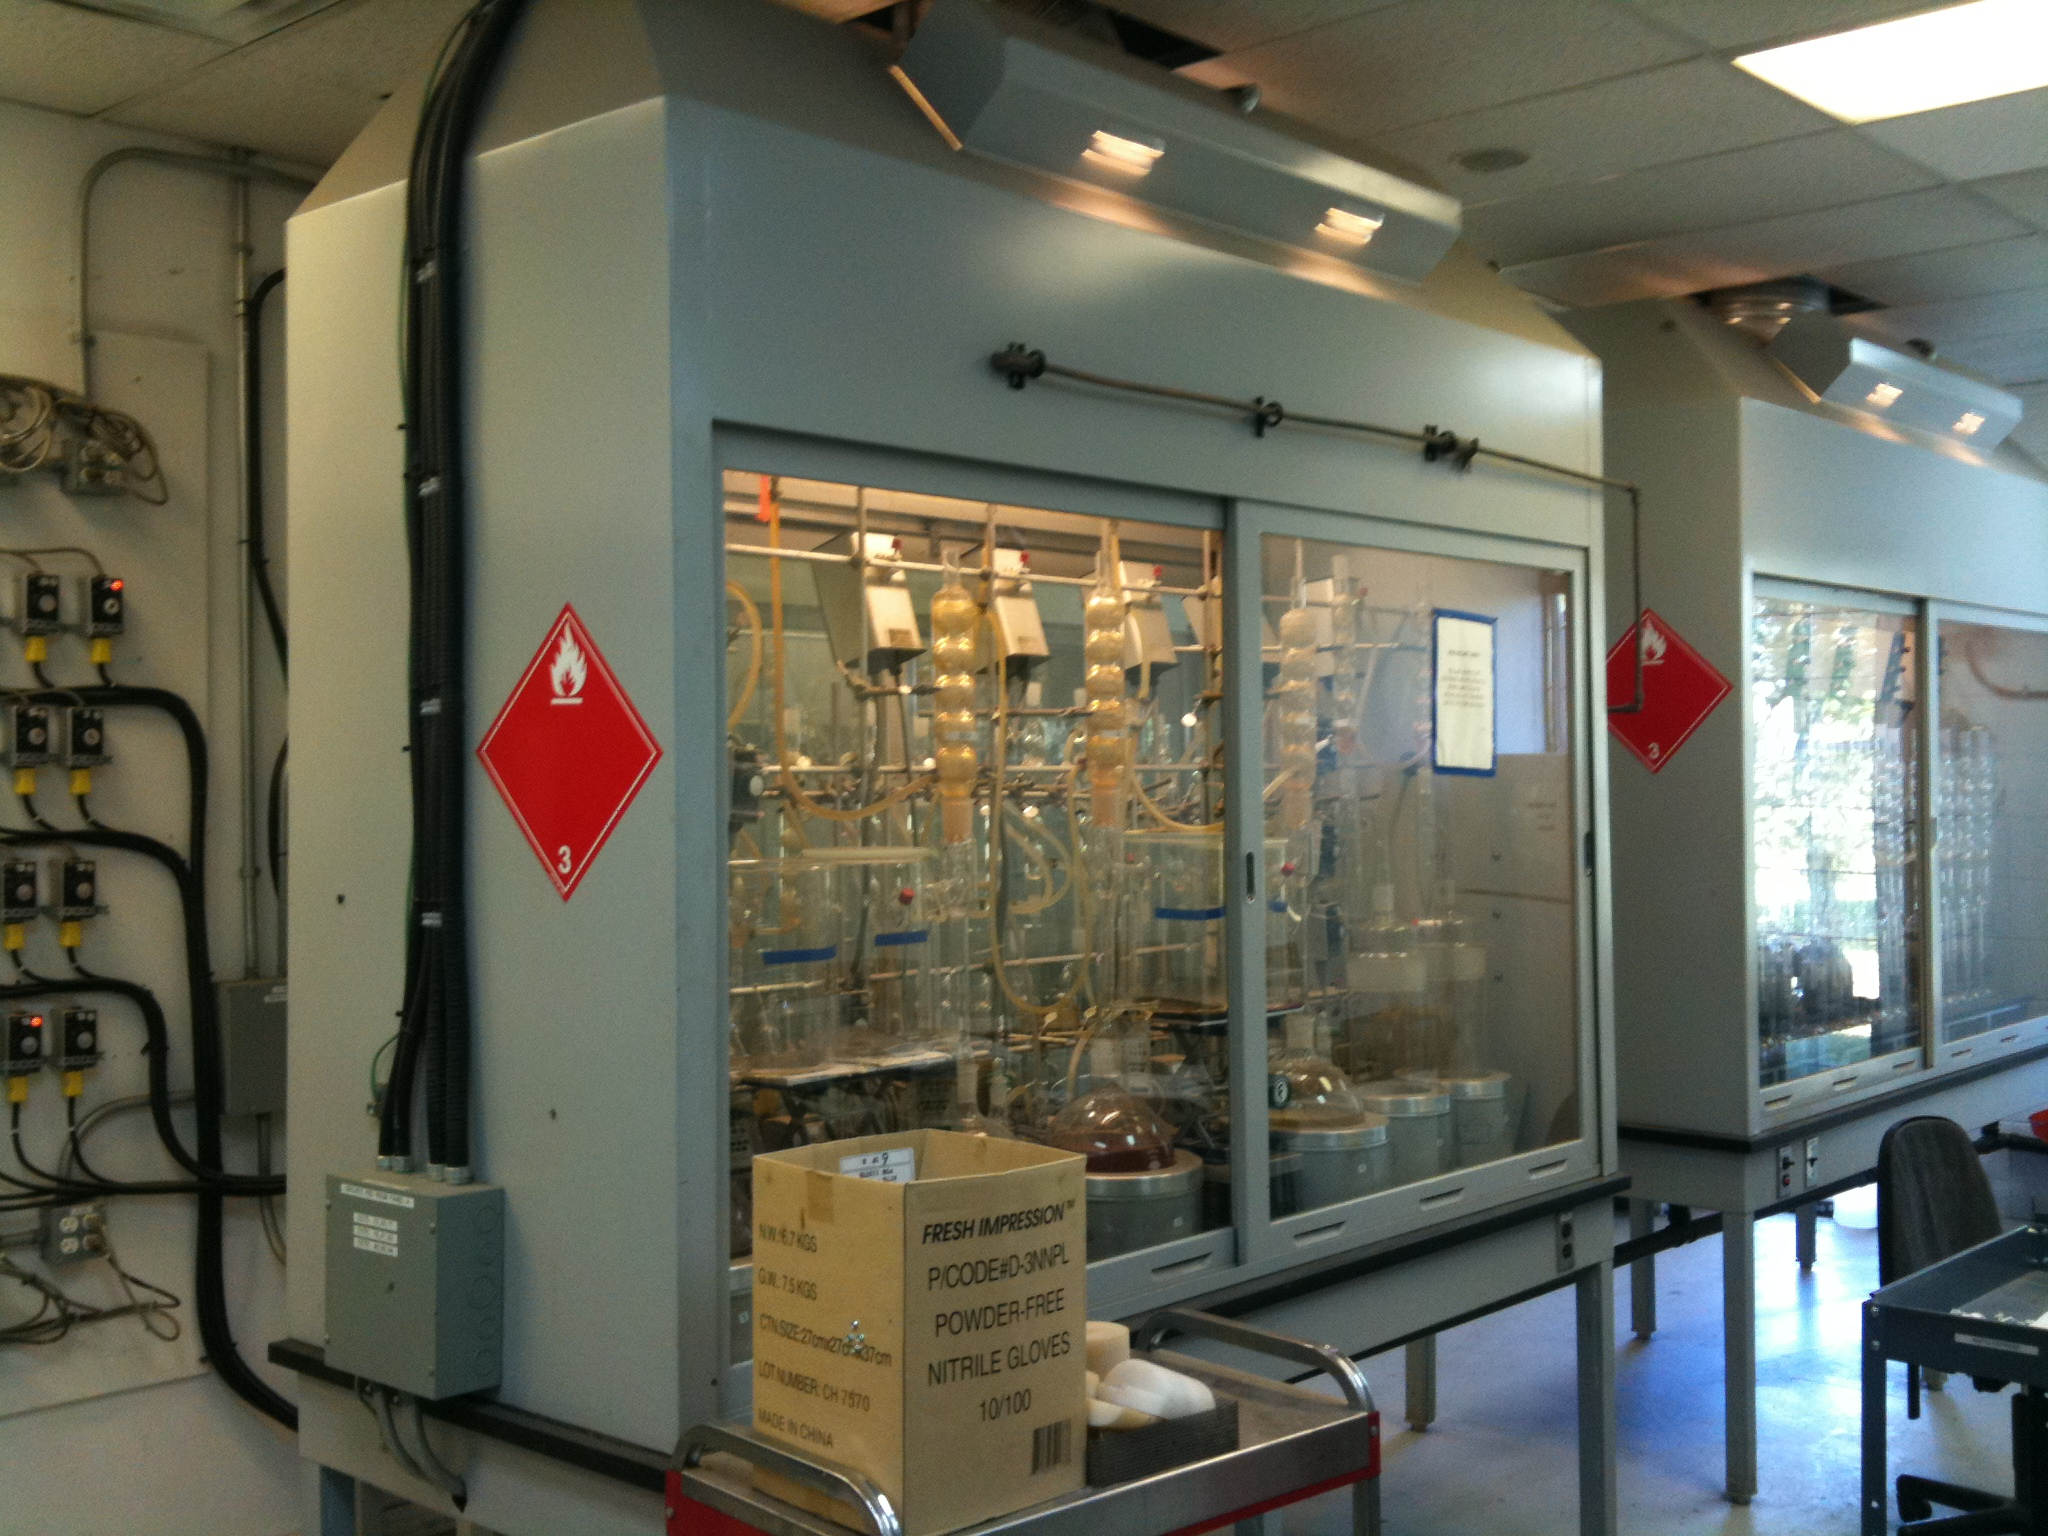 Image showing equipment for the testing and analysis of oil and gas industry core samples.